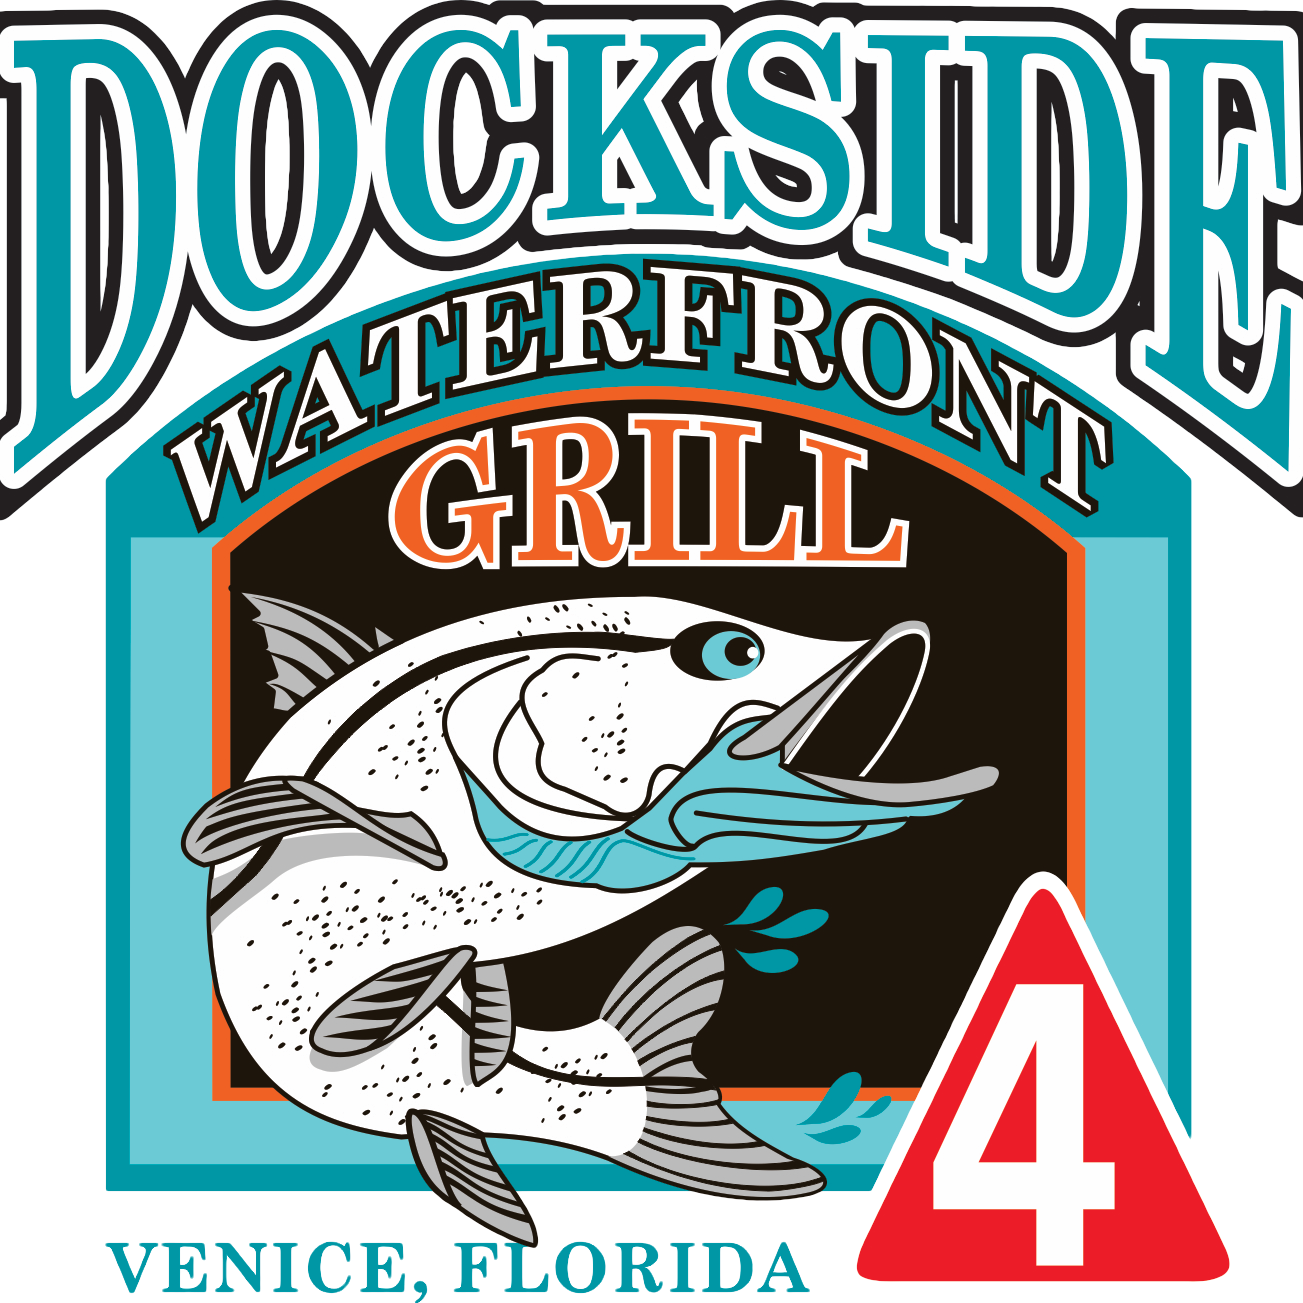 Dockside Waterfront Grill